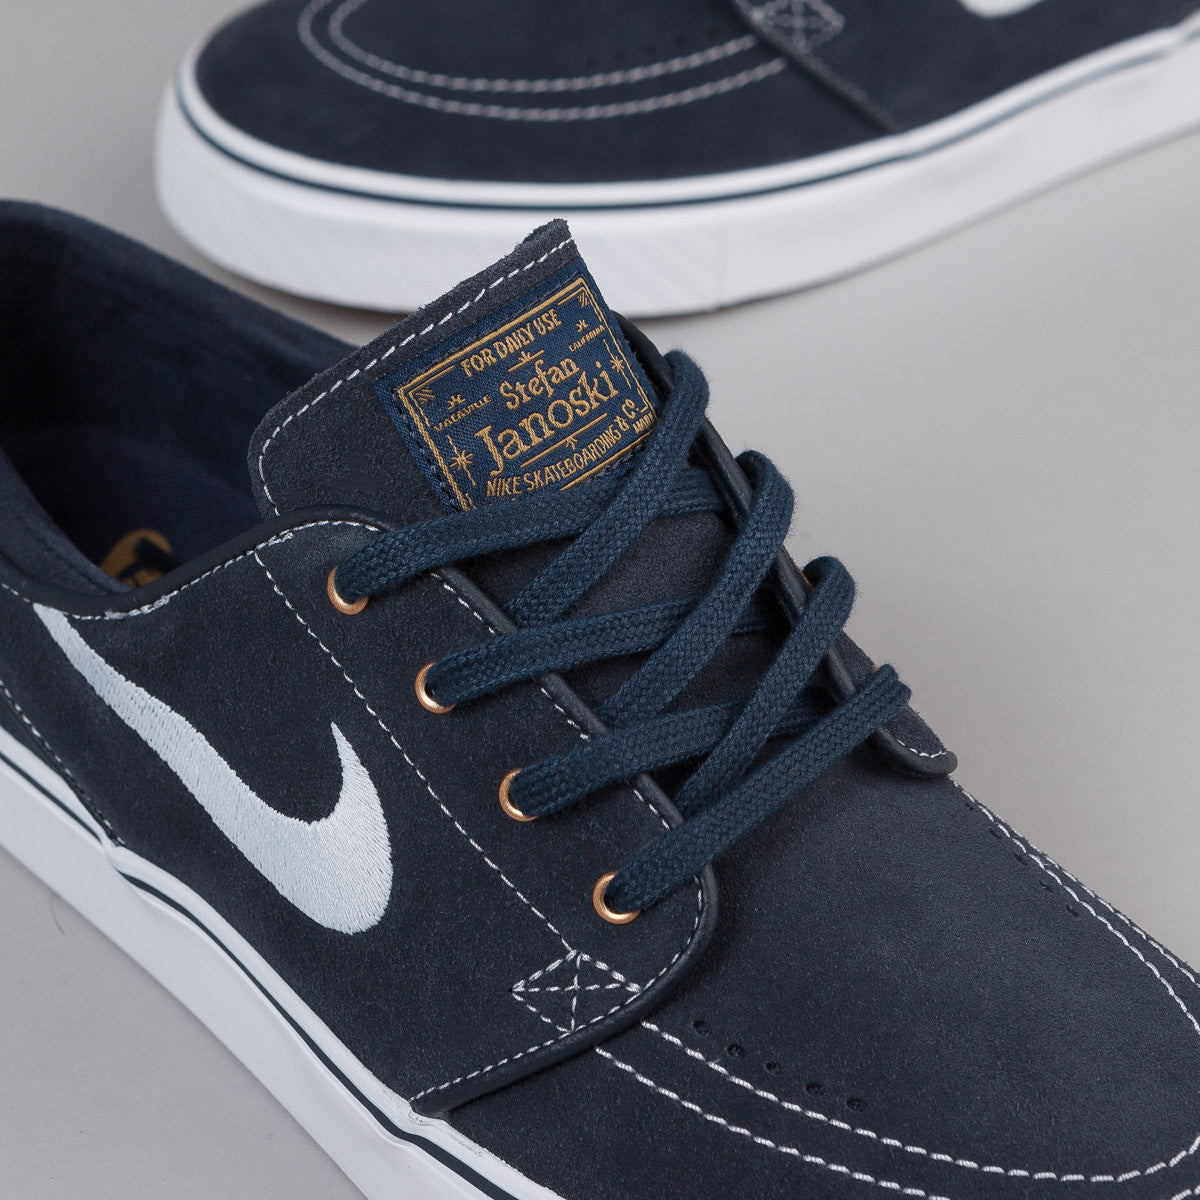 Nike SB Stefan Janoski Shoes - Dark Obsidian / White - White - Gum Light Brown